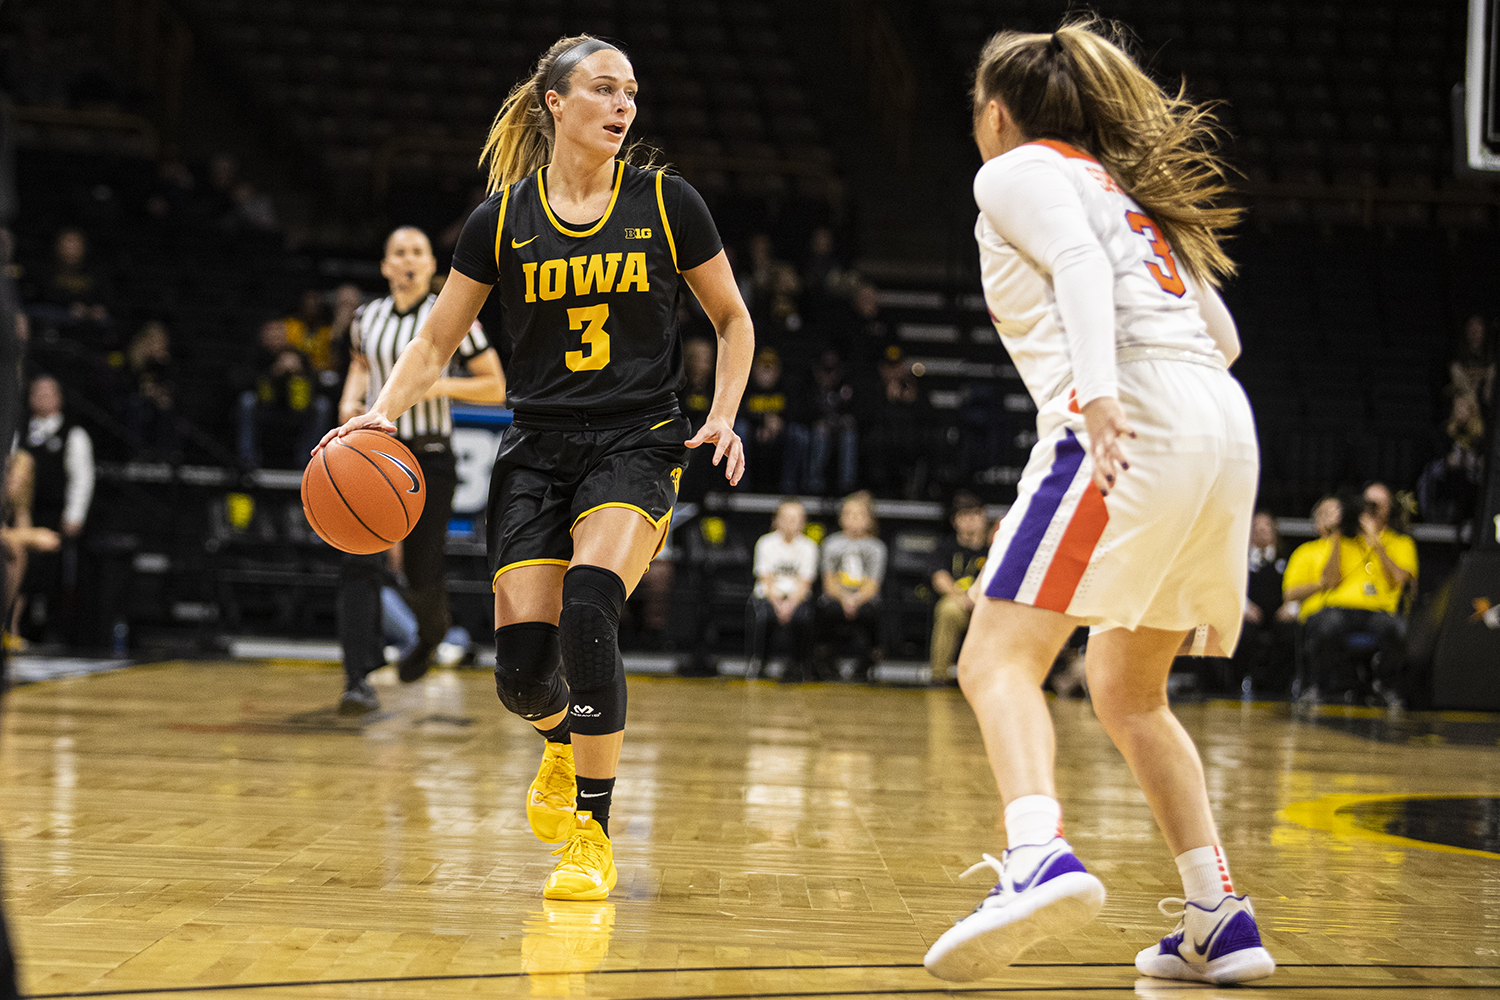 Iowa guard Makenzie Meyer looks to pass during a womenÕs basketball match between Iowa and Clemson at Carver-Hawkeye Arena on Wednesday, Dec. 4, 2019. The Hawkeyes defeated the Tigers, 74-60. (Shivansh Ahuja/The Daily Iowan)